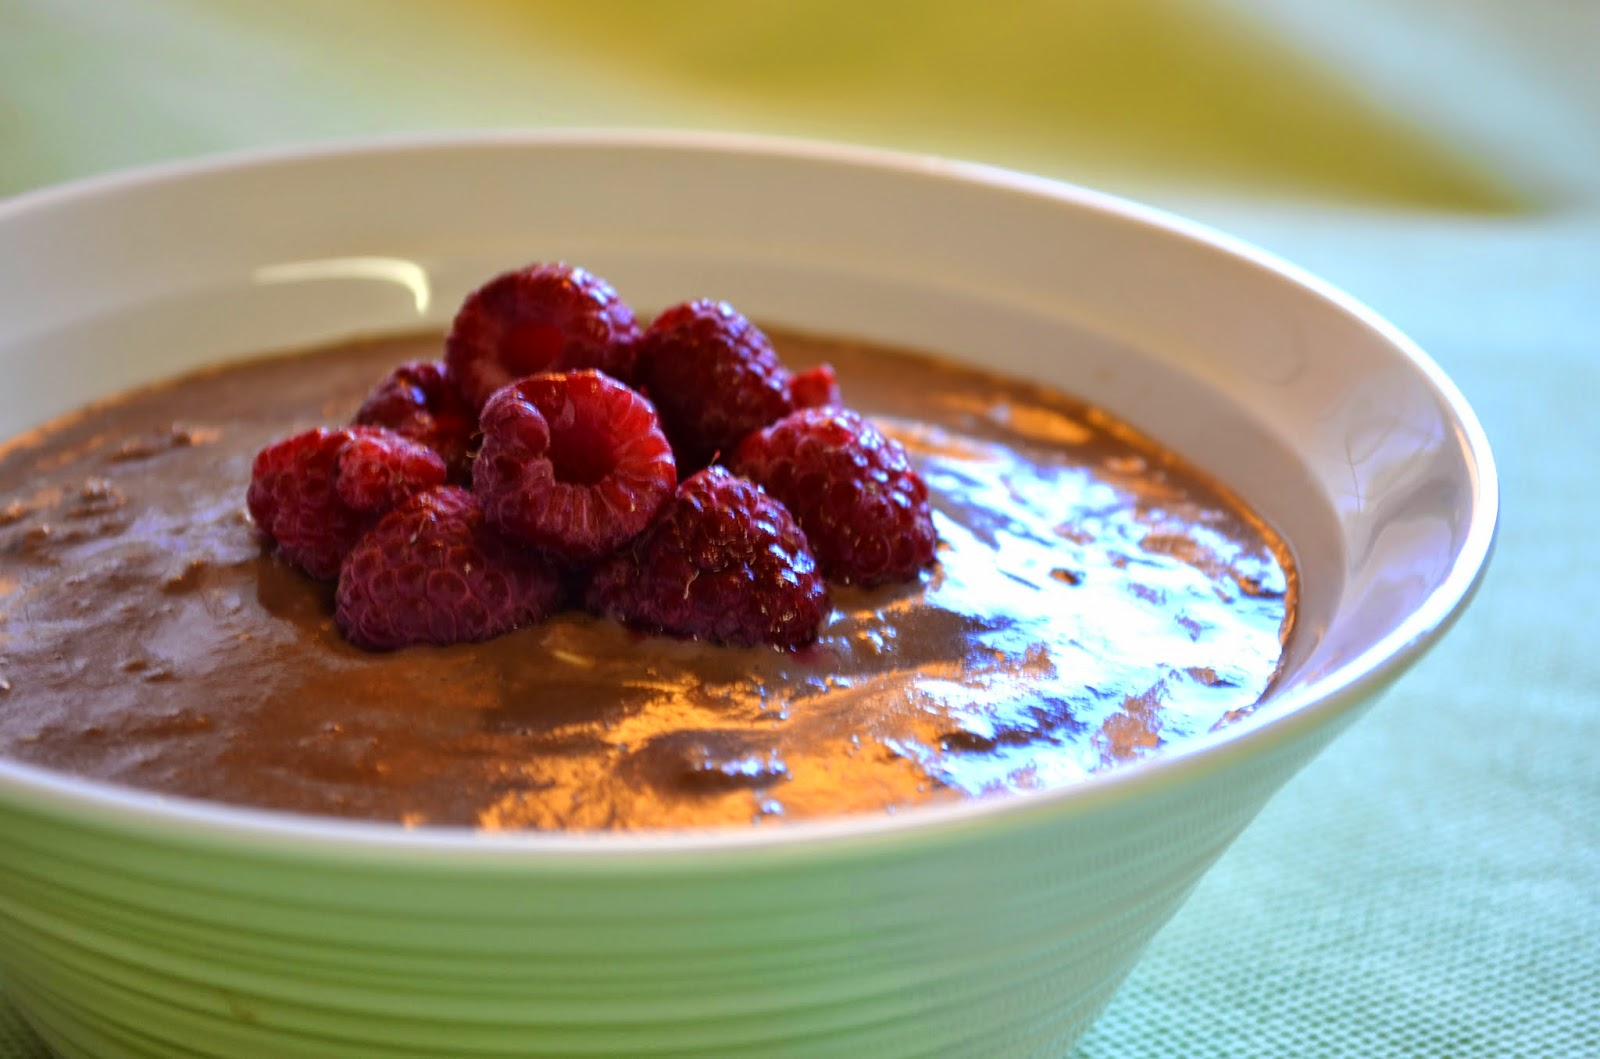 Chocolate porridge topped with raspberries